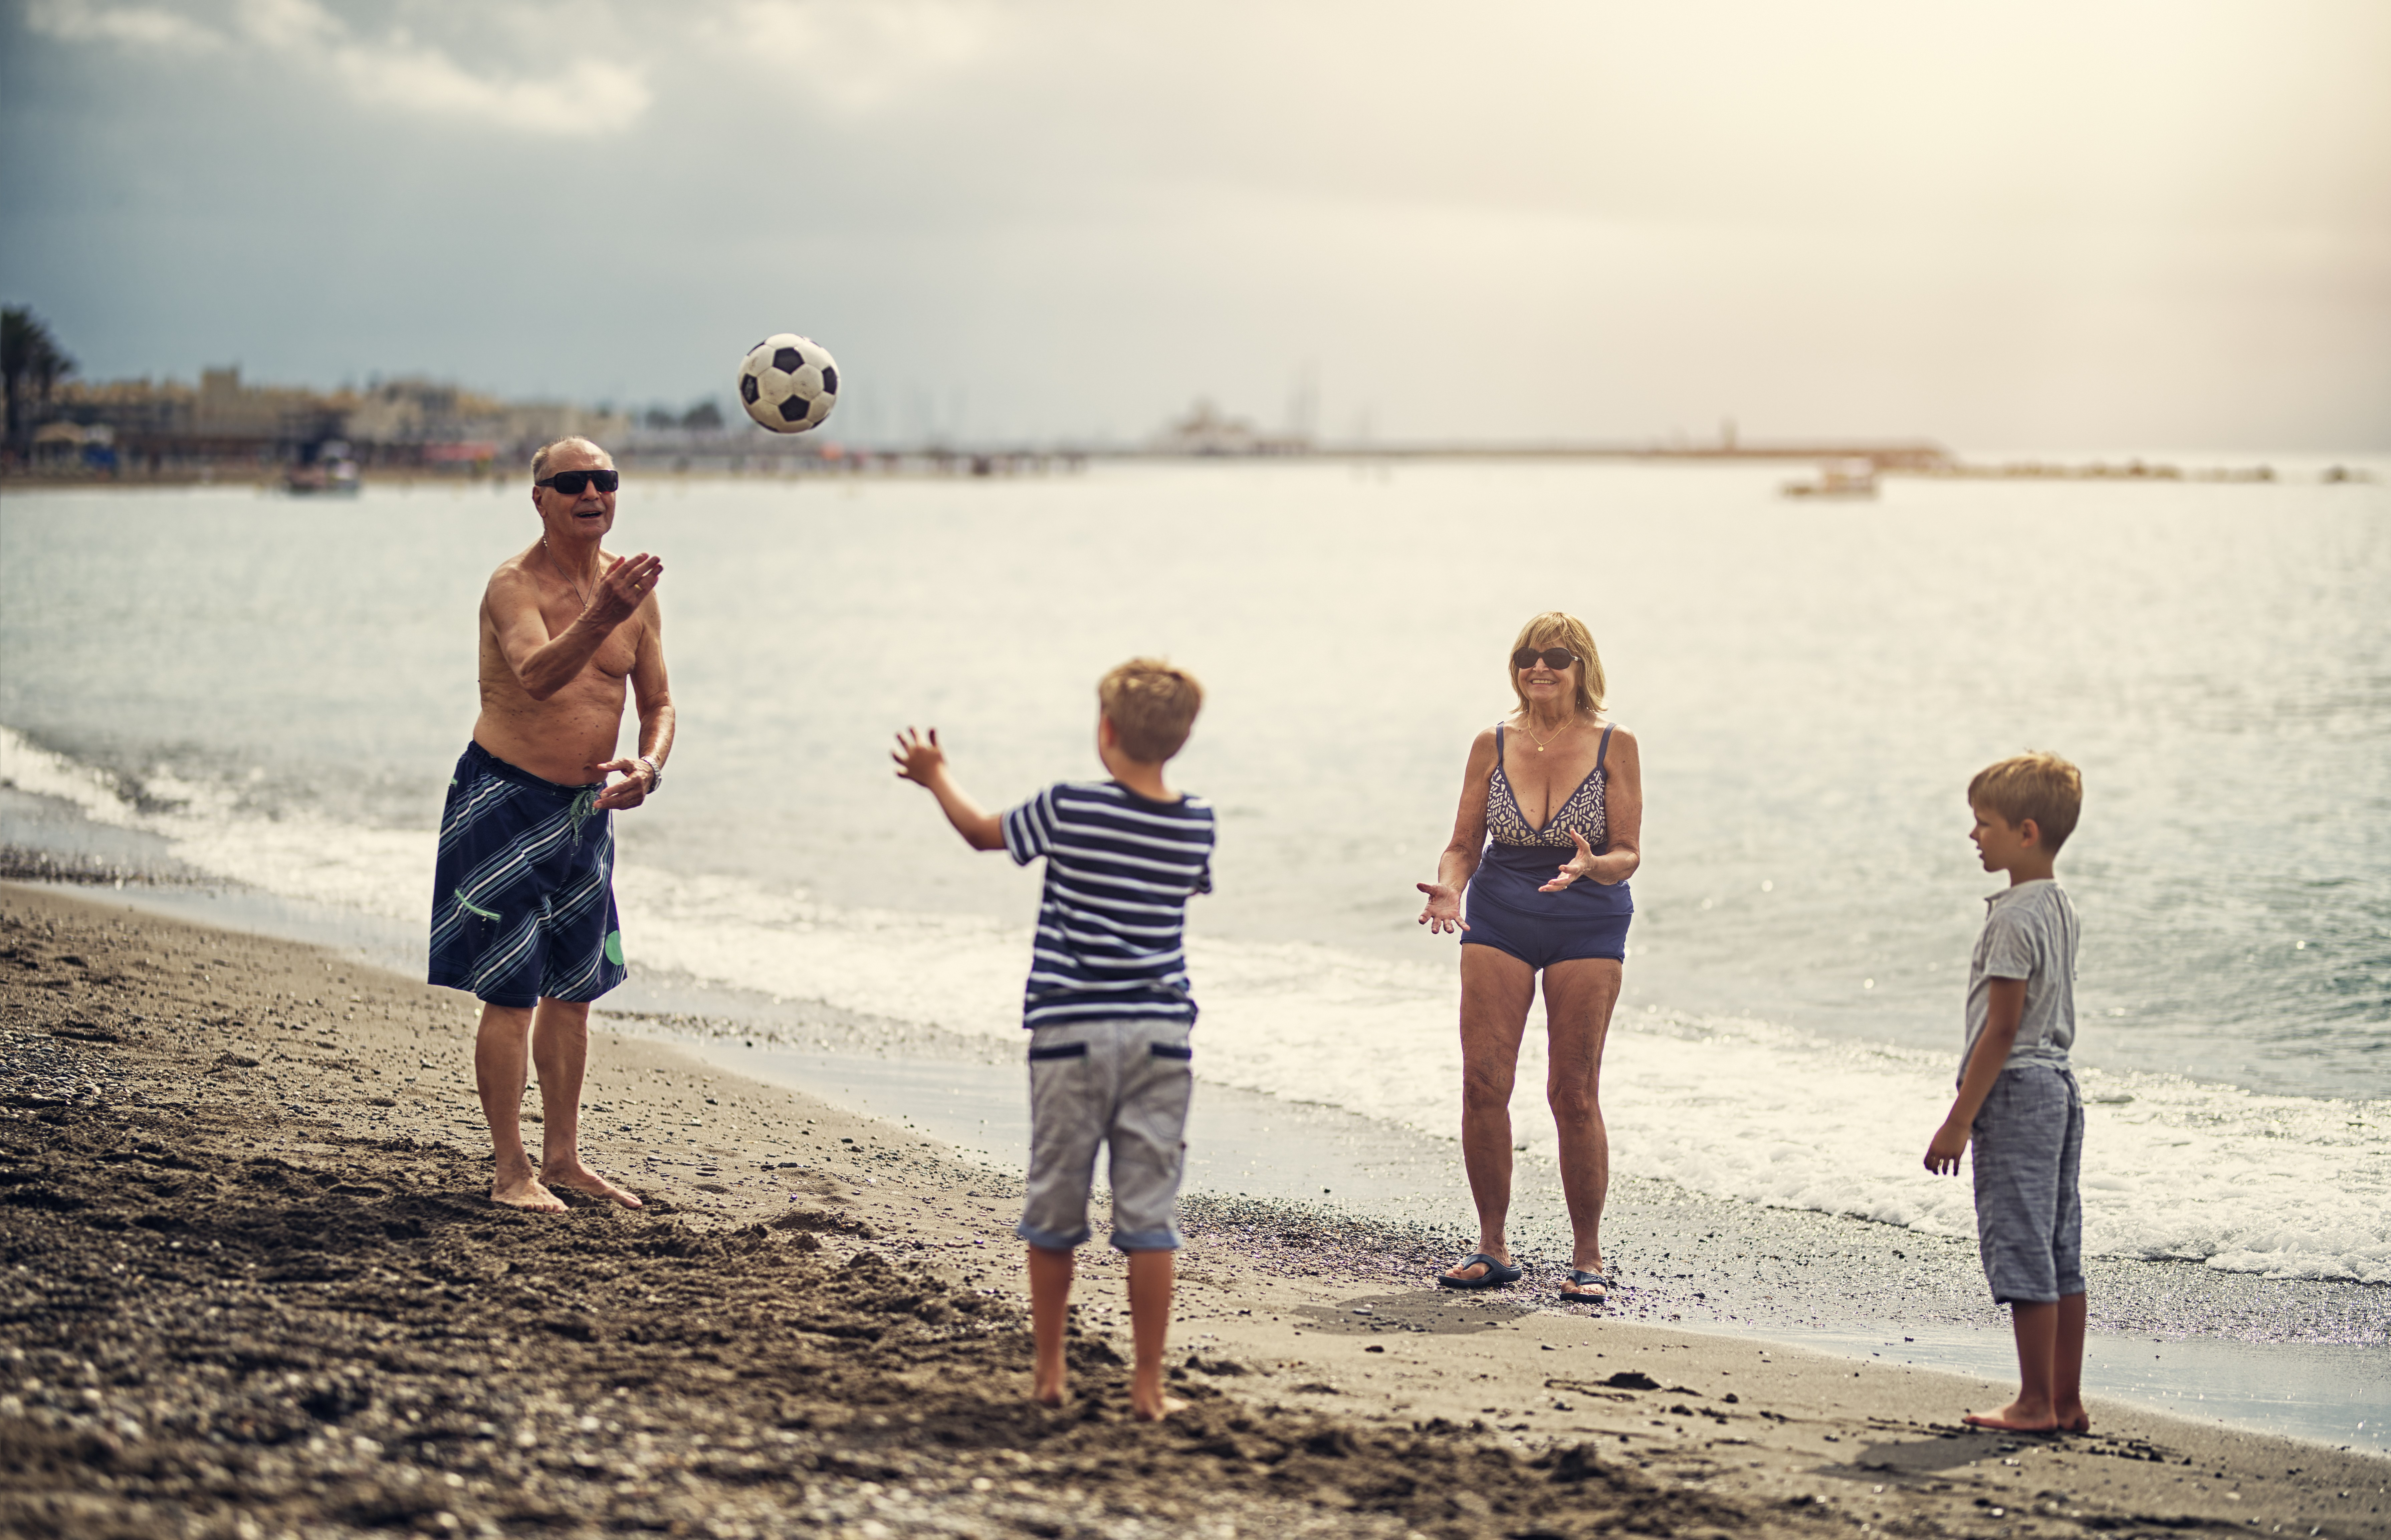 13 Tips to Make Your Summer Healthier